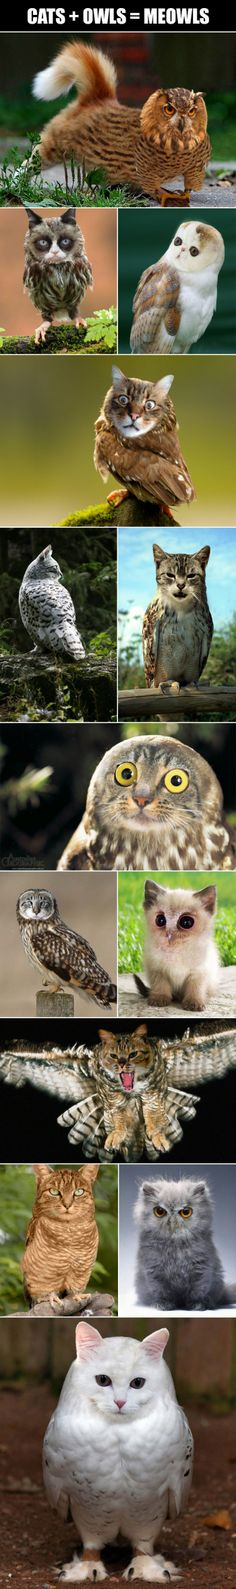 Cats + owls = meowls - Just DWL || The Ultimate Trolling